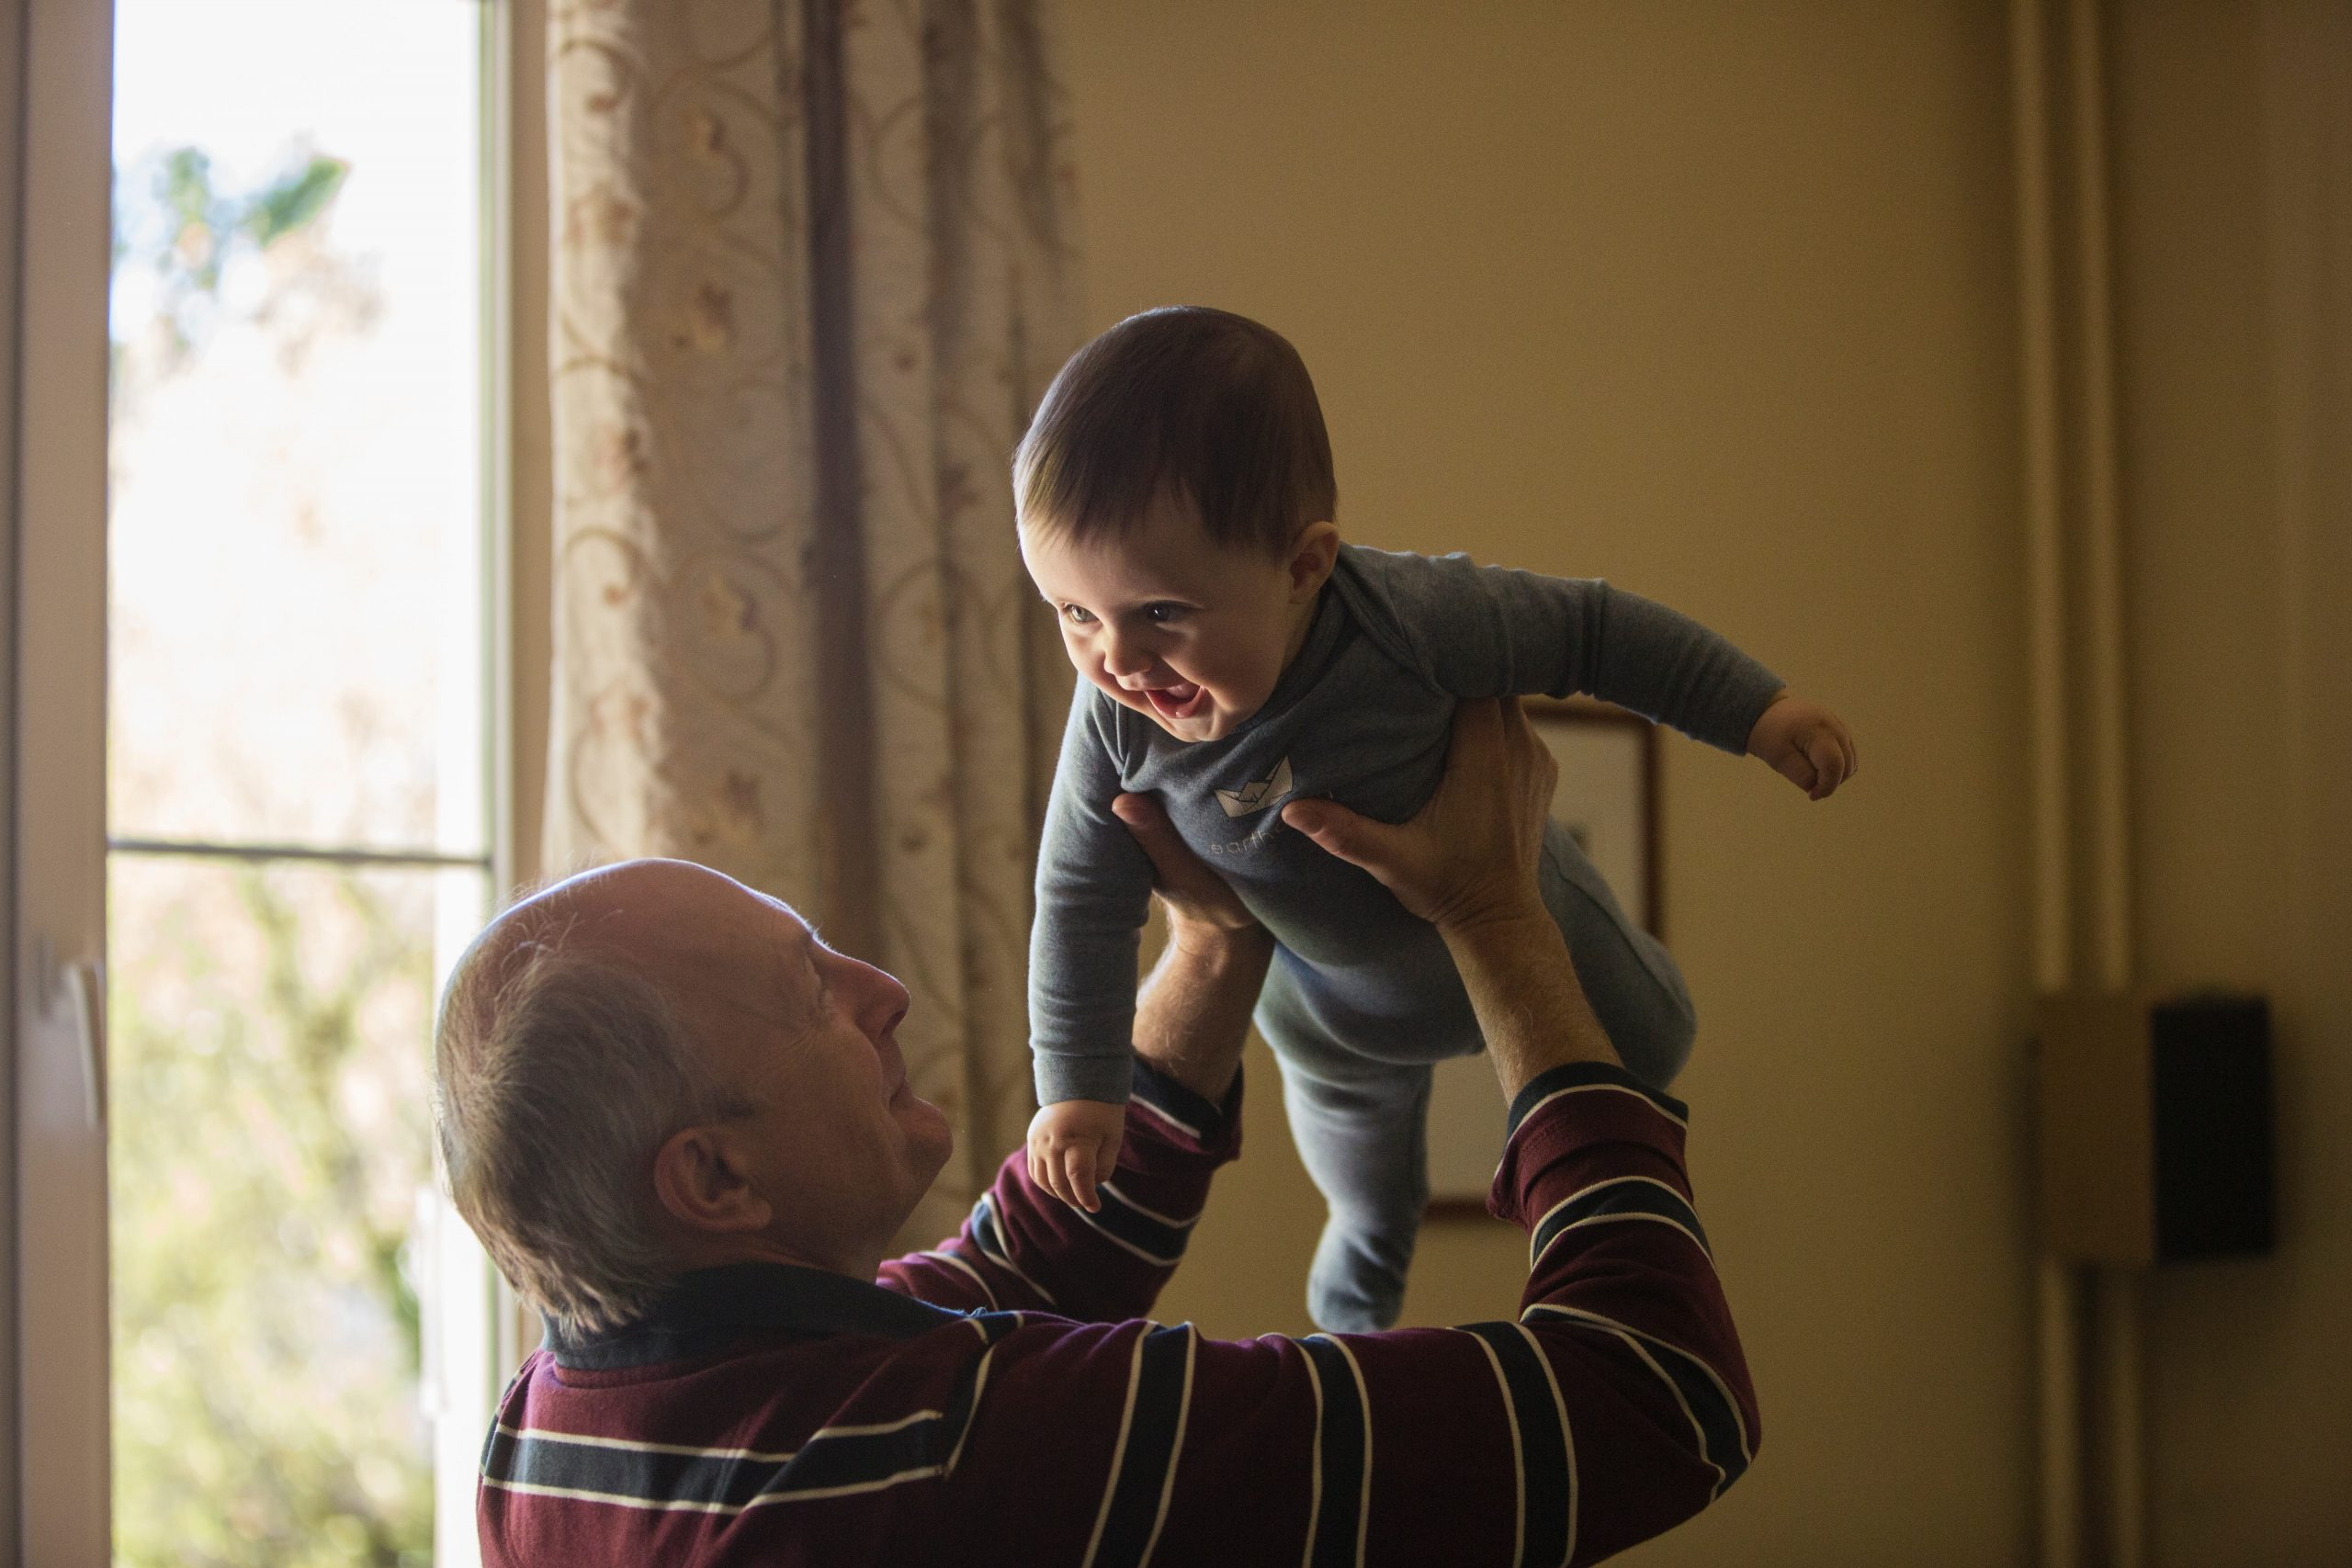 CDC: It's OK for vaccinated grandparents to visit family if no risk for severe disease